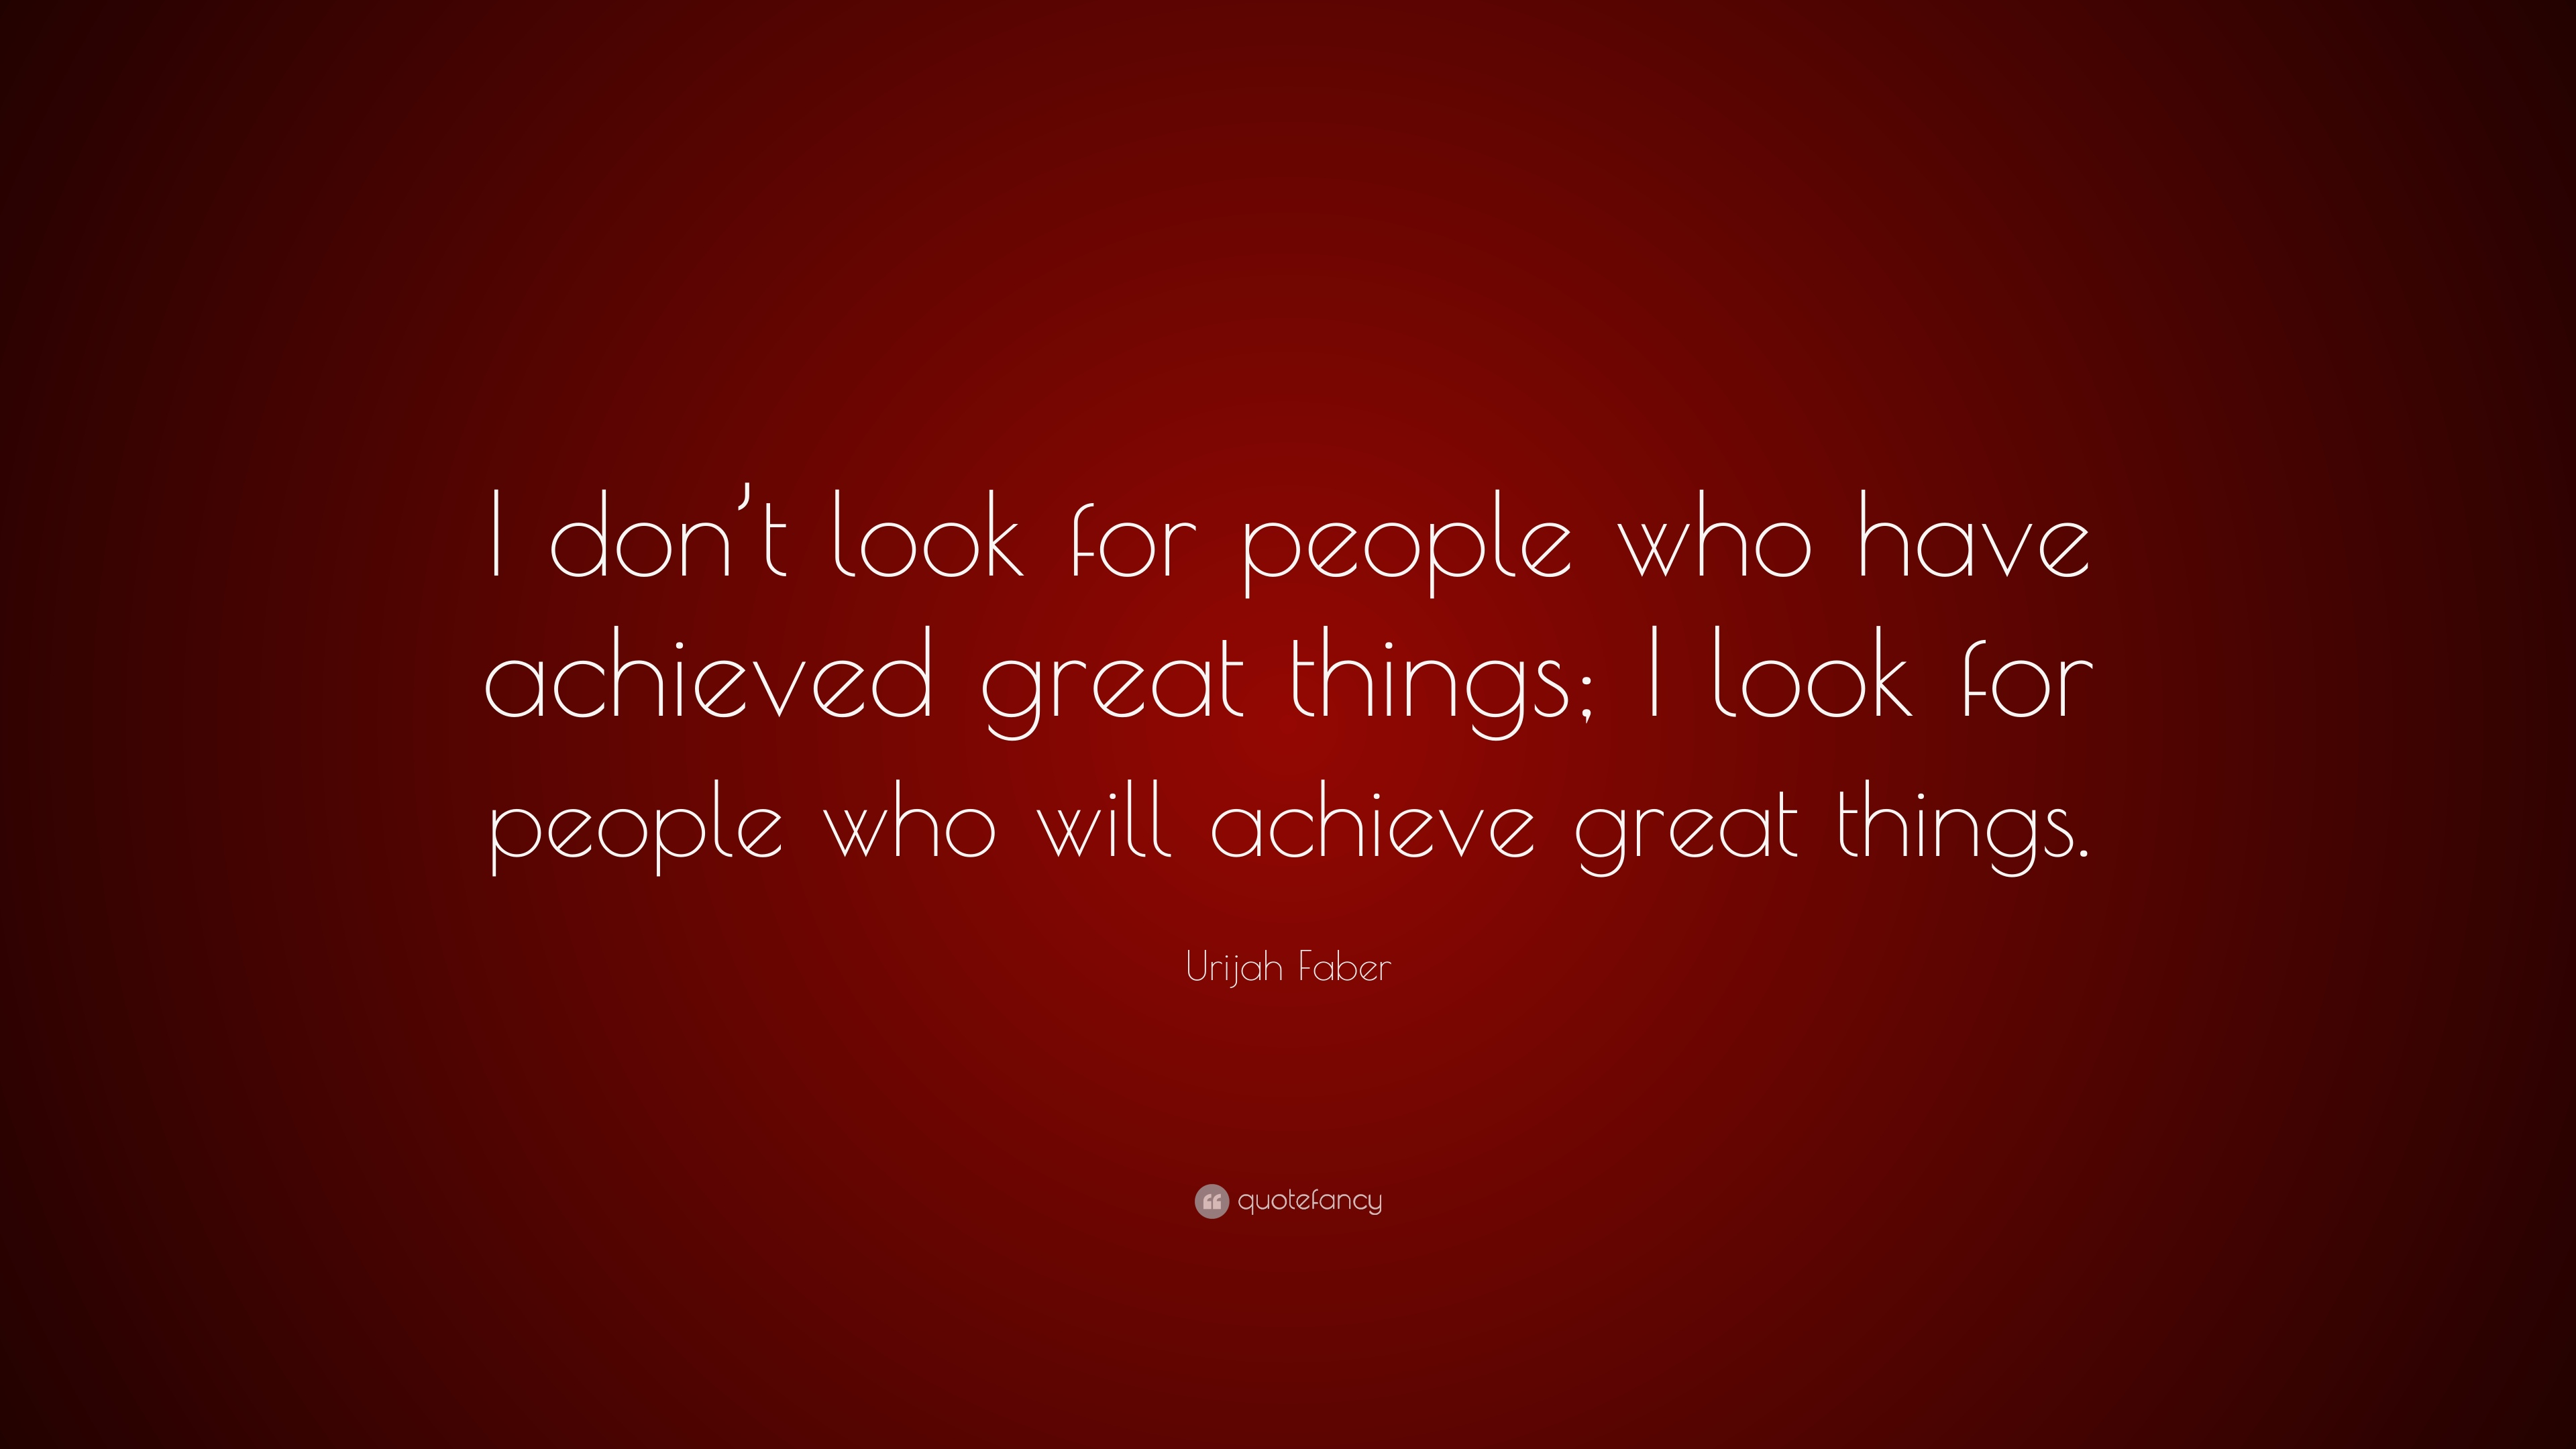 Urijah Faber Quote: U201cI Donu0027t Look For People Who Have Achieved Great